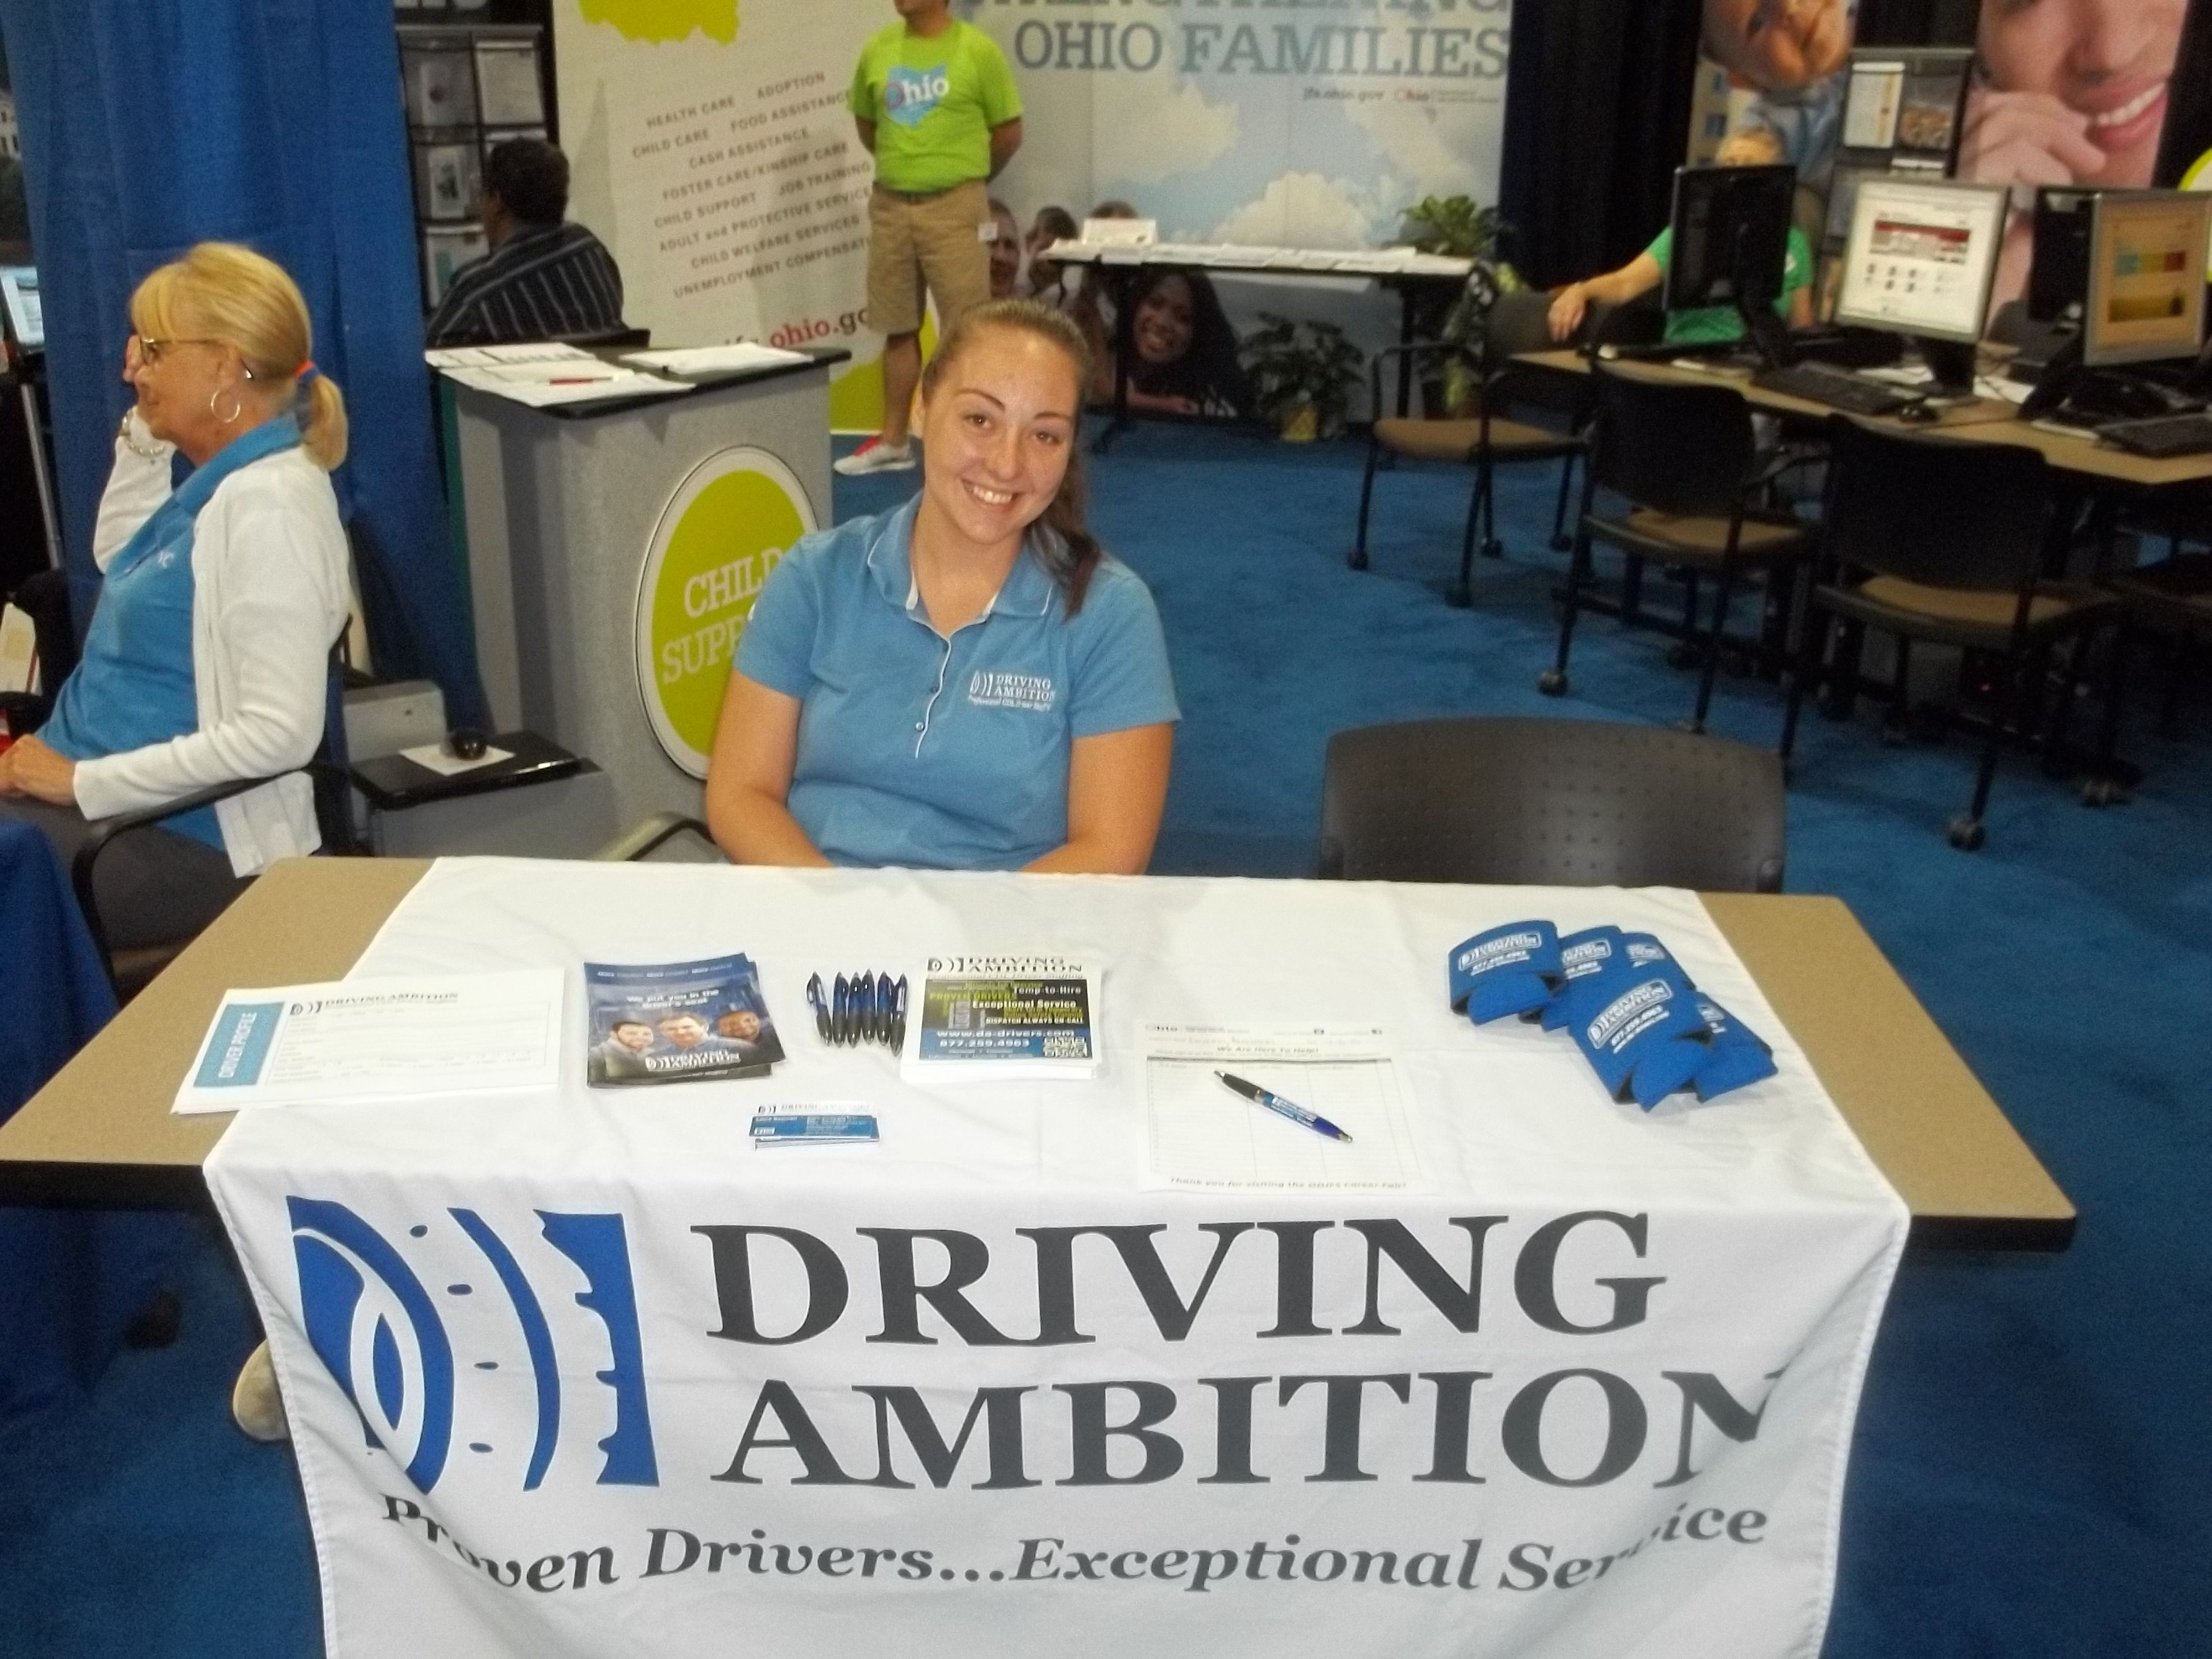 Driving ambition is now hiring for 30 class a cdl drivers